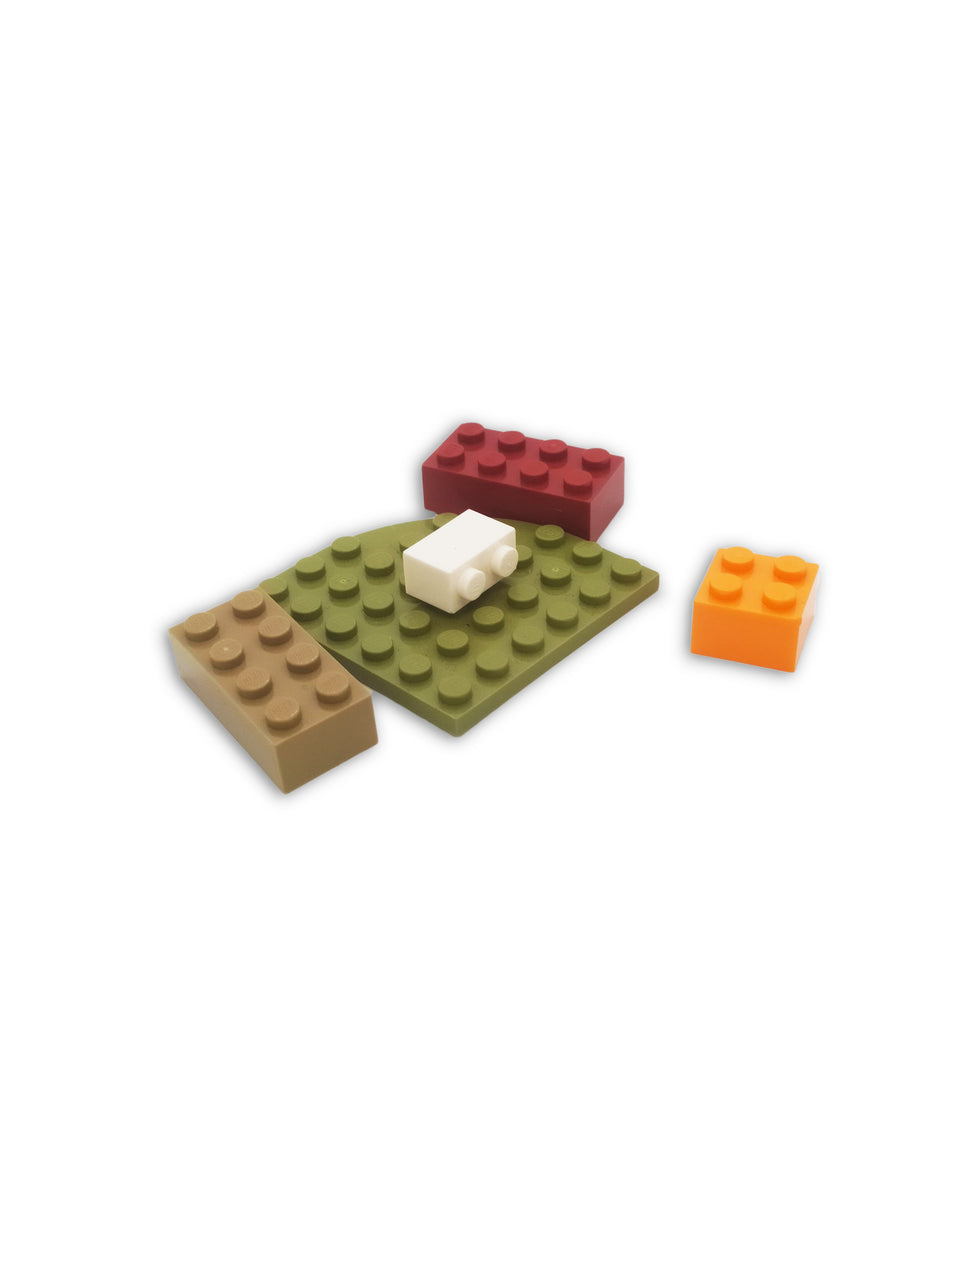 5 Color Mix Lego Bag